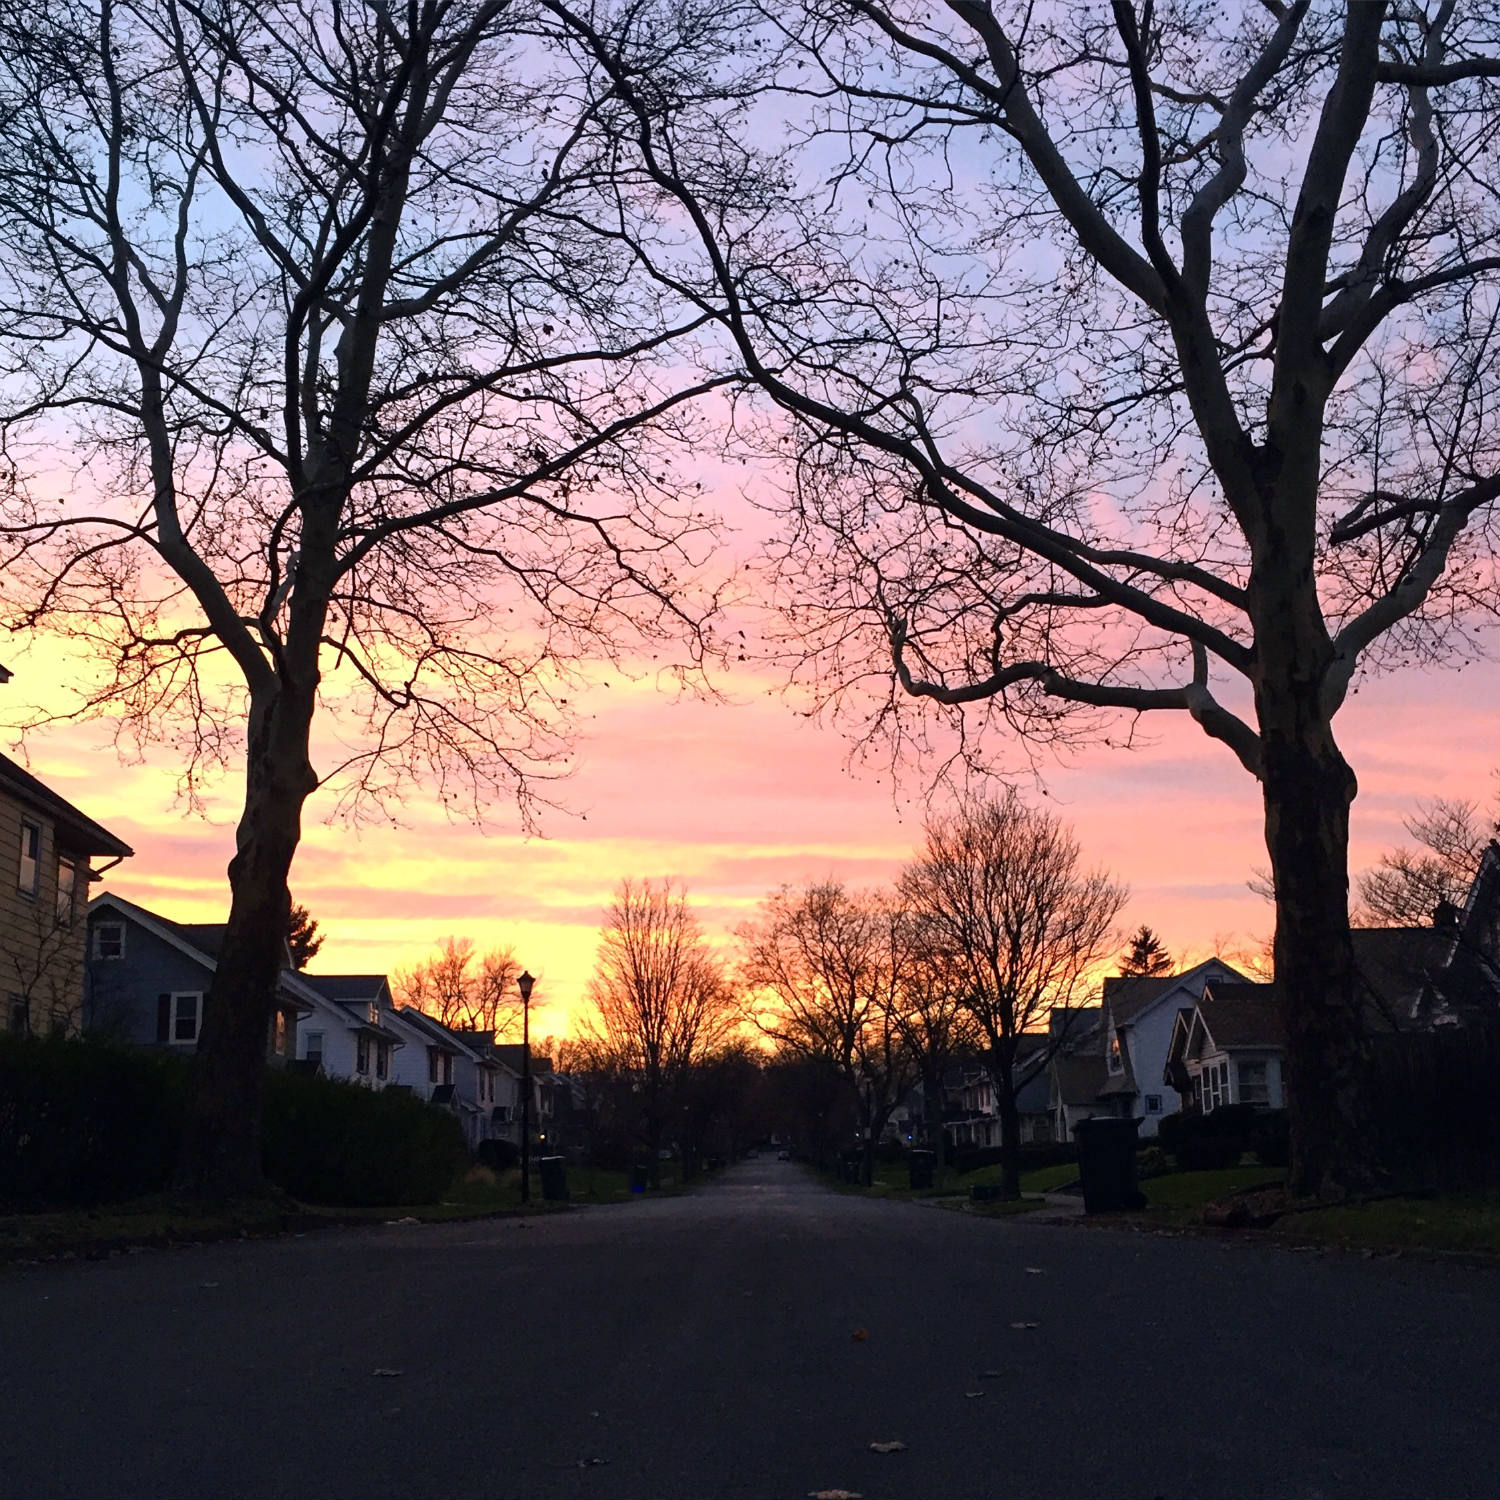 Sunset in the North Winton Village Neighborhood of Rochester, New York